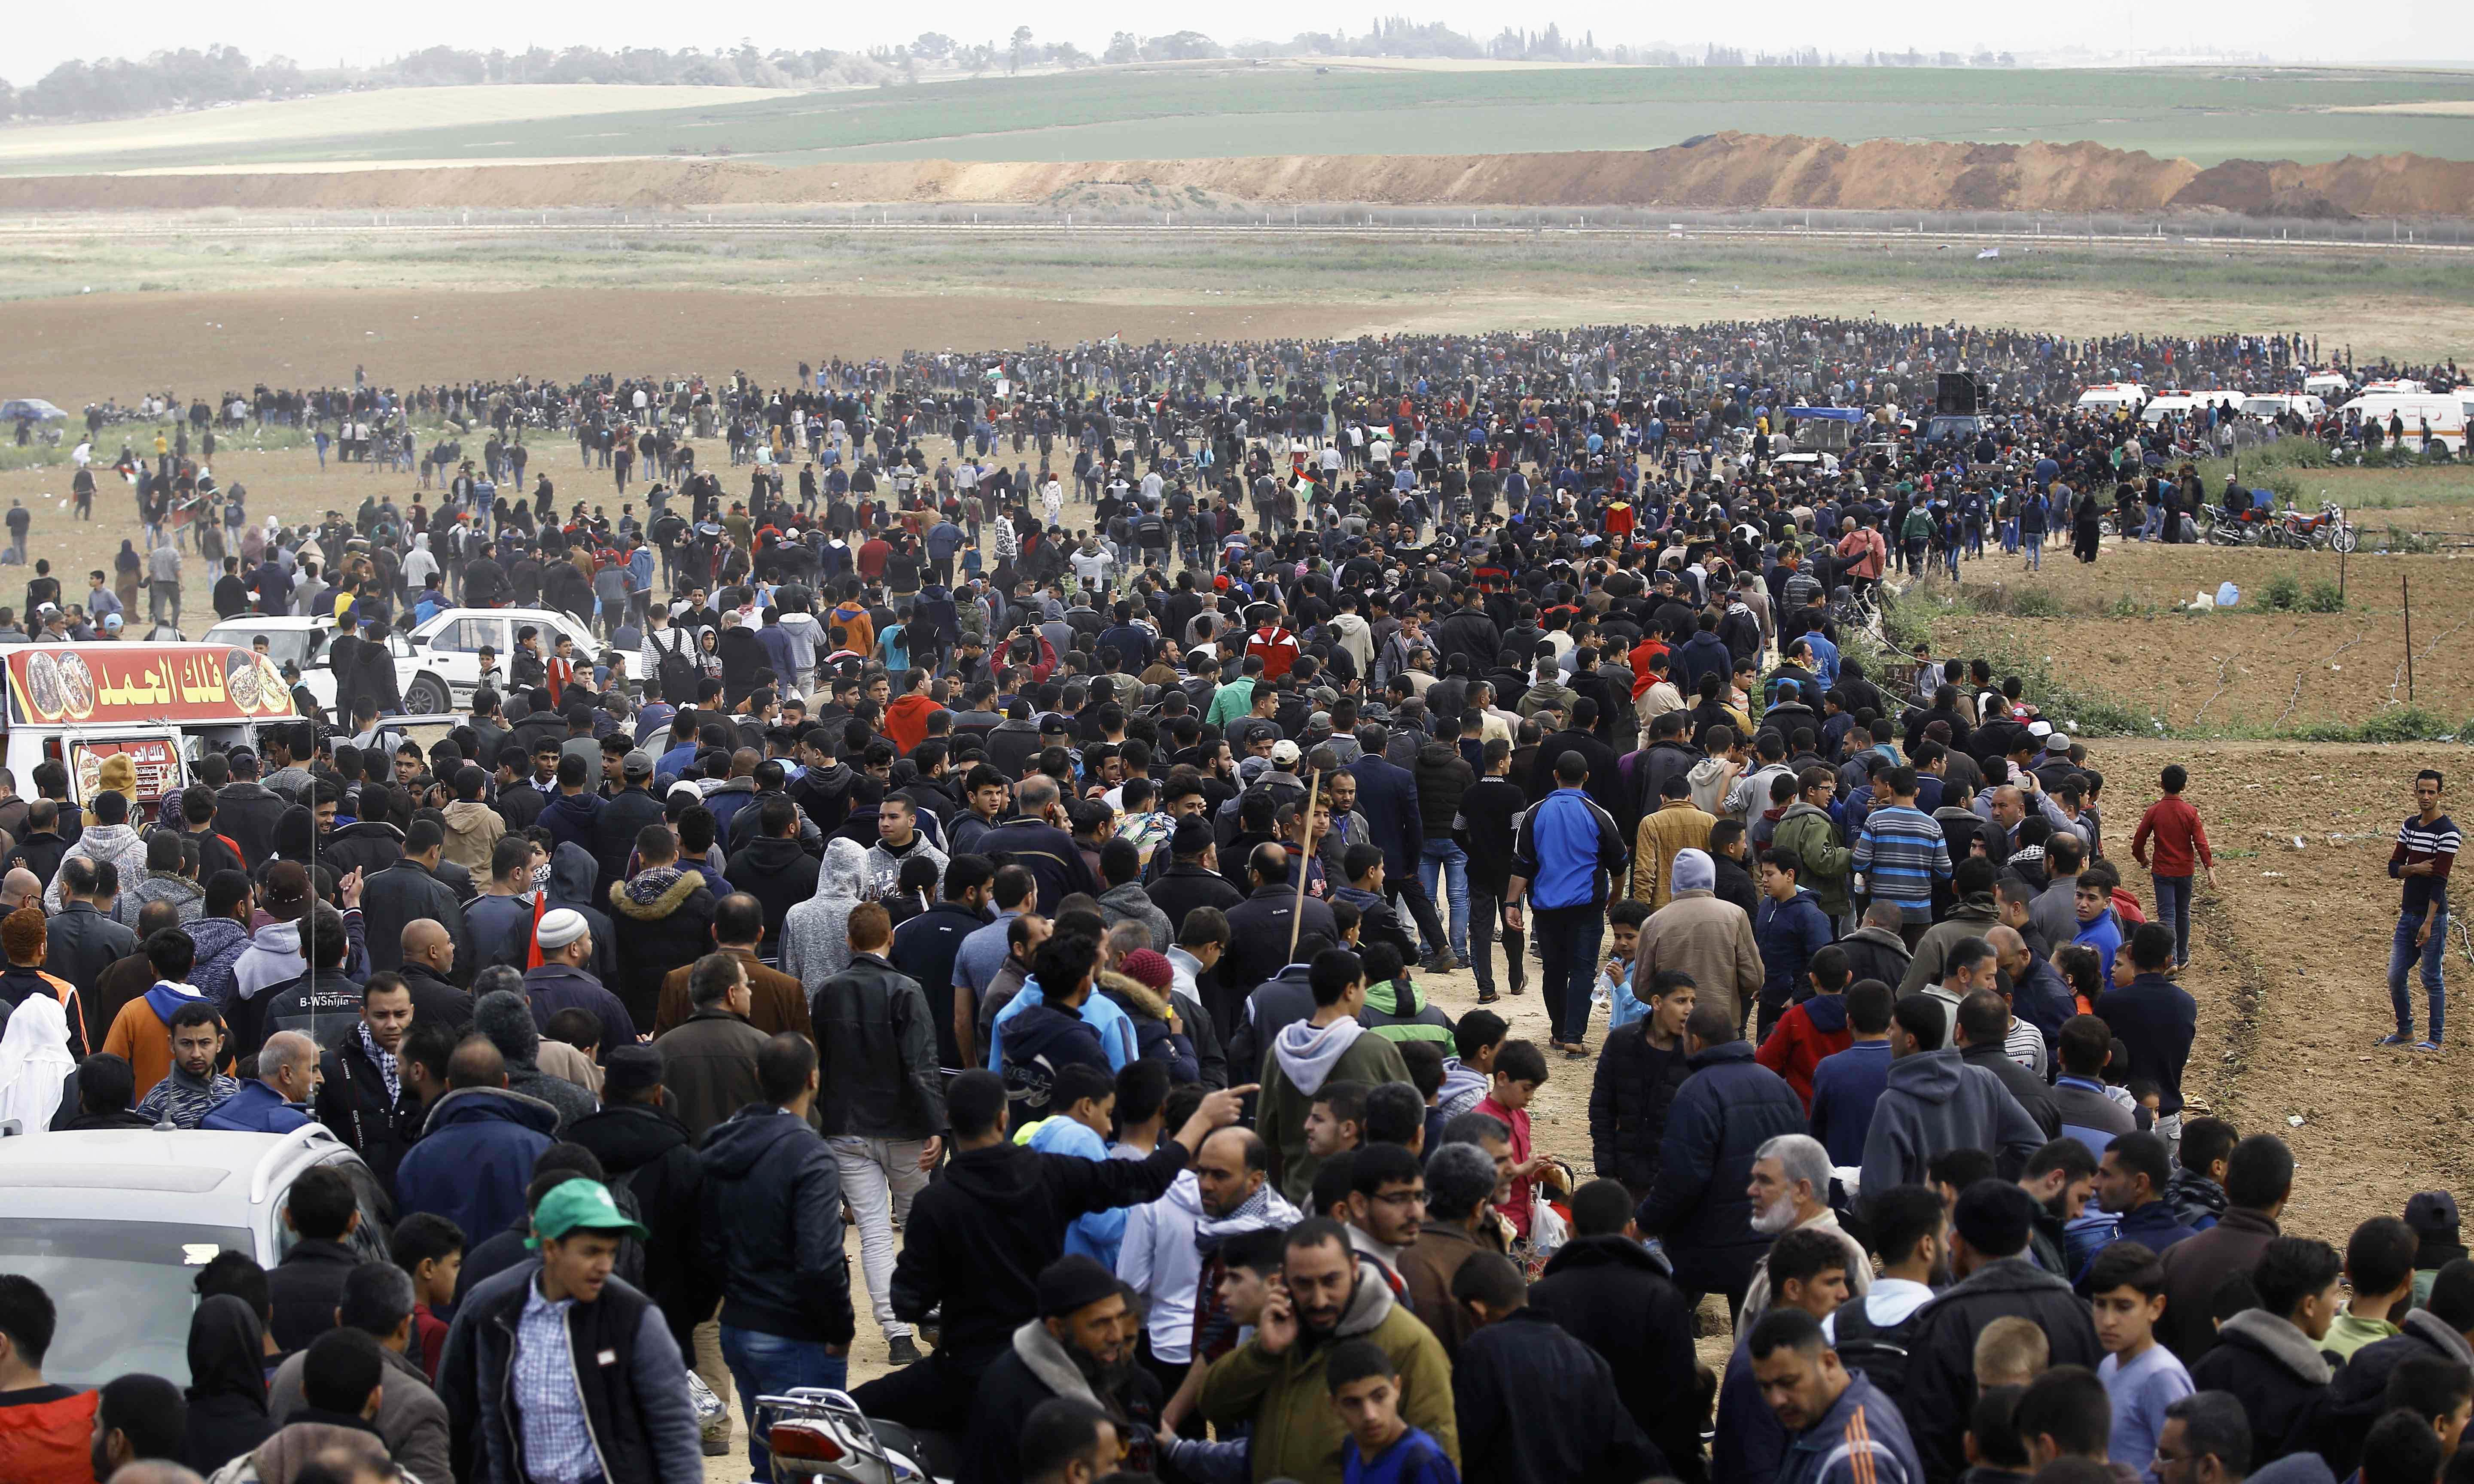 15 Gazans killed by Israeli forces as thousands march near border